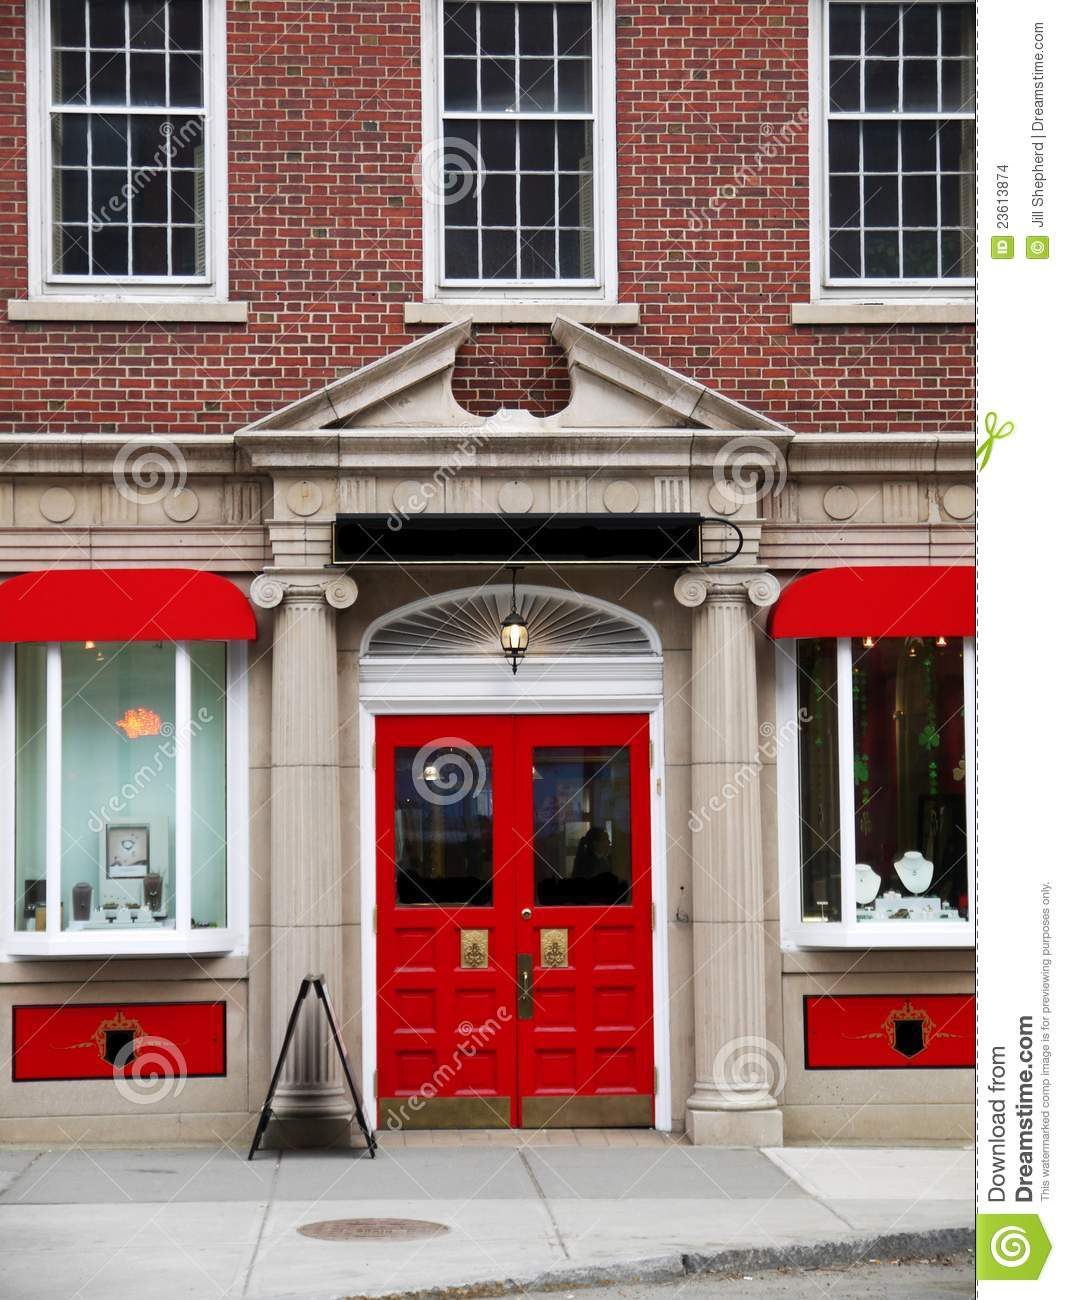 Expensive Front Doors City: Elegant Red Store Front Stock Images - Image: 23613874